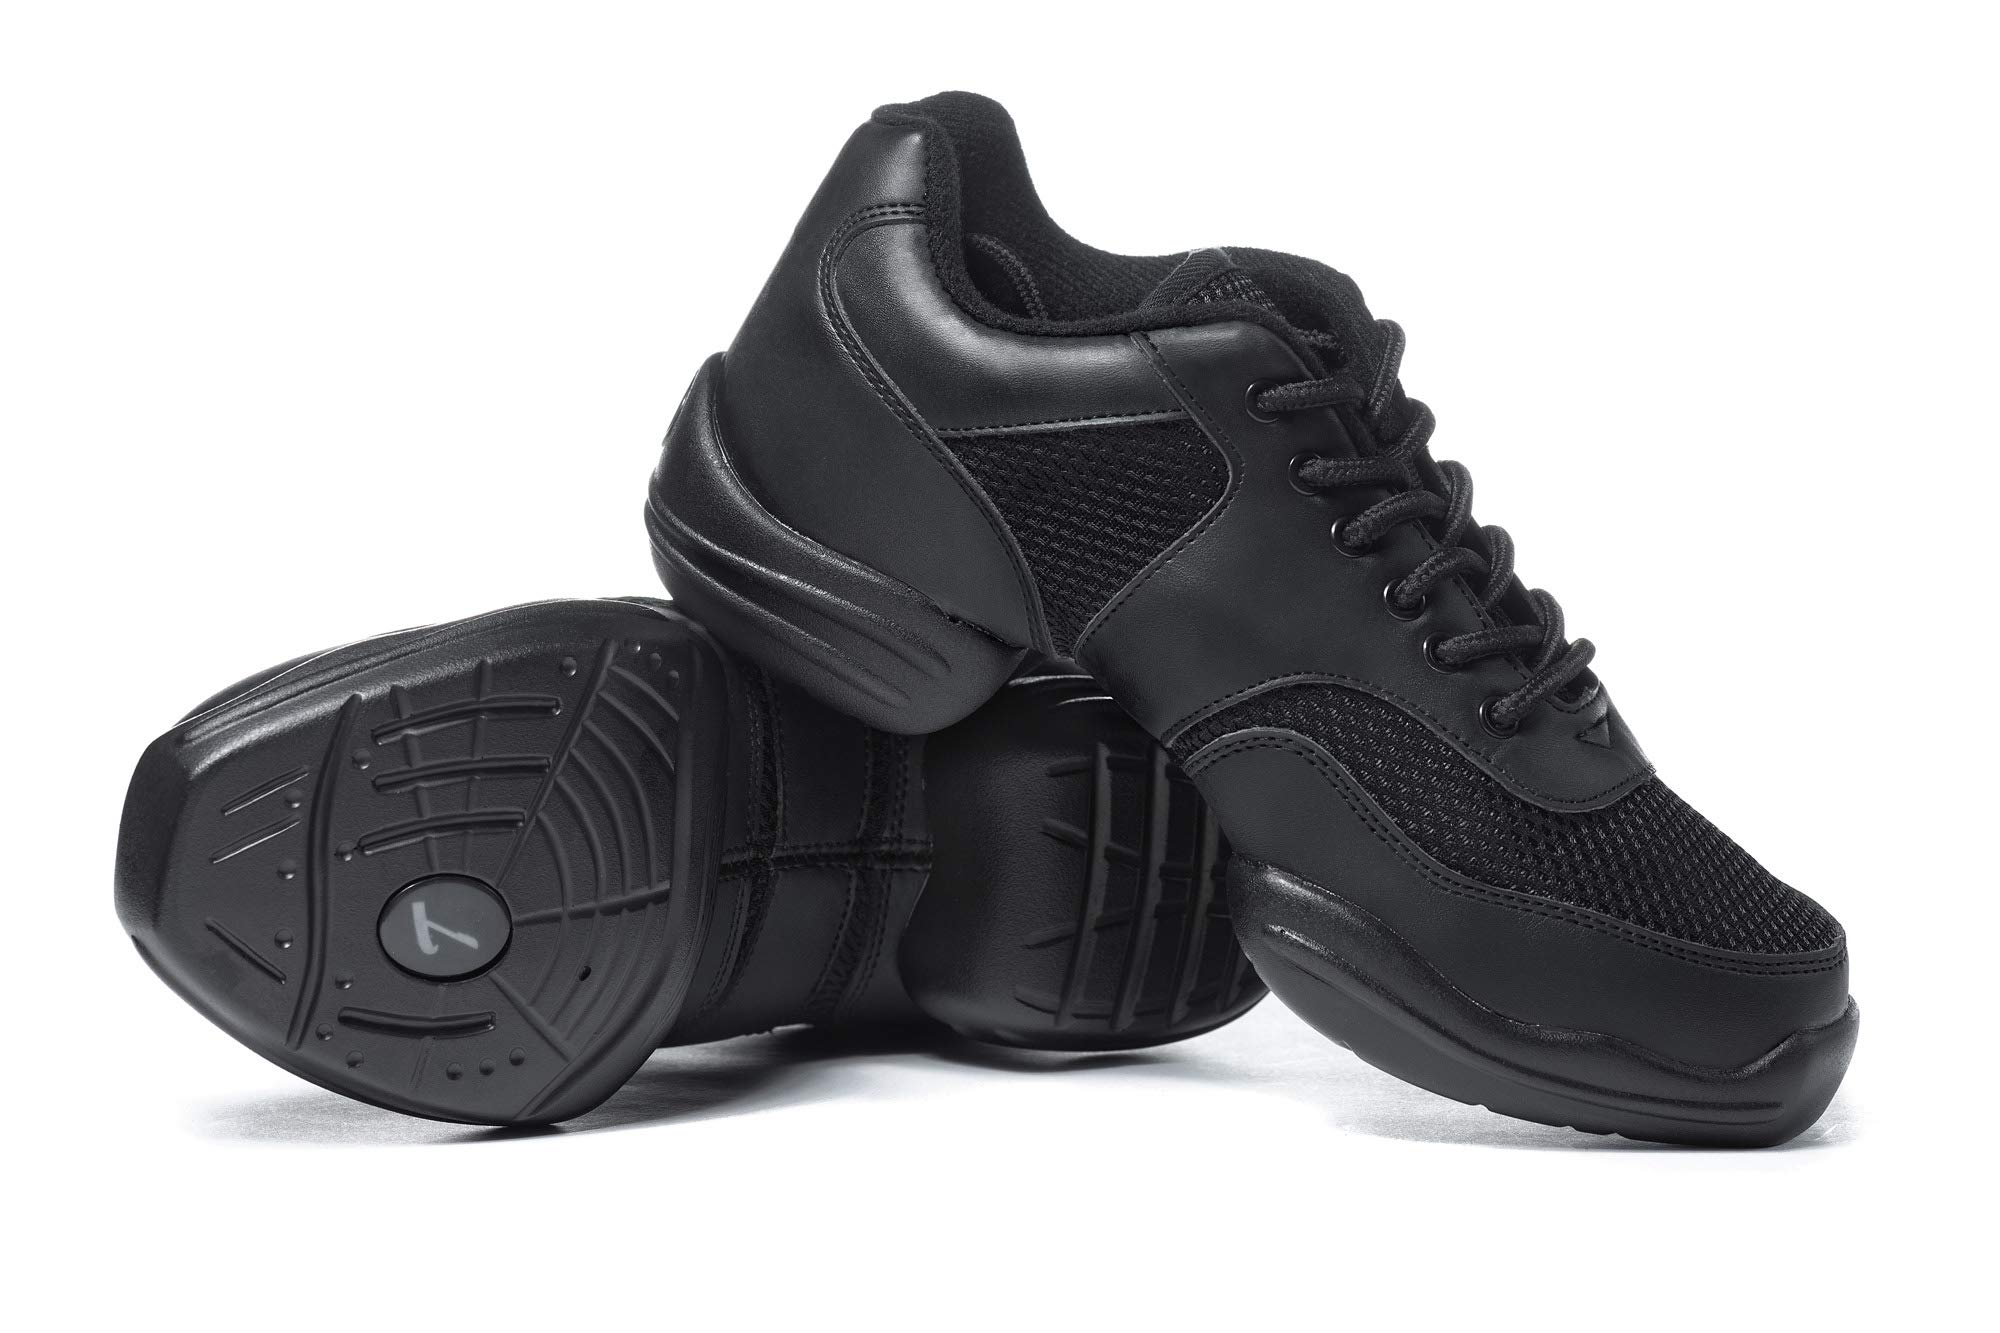 Adult Split-Sole Sneaker T8000BLK10.5 Black 10.5 M US by Theatricals